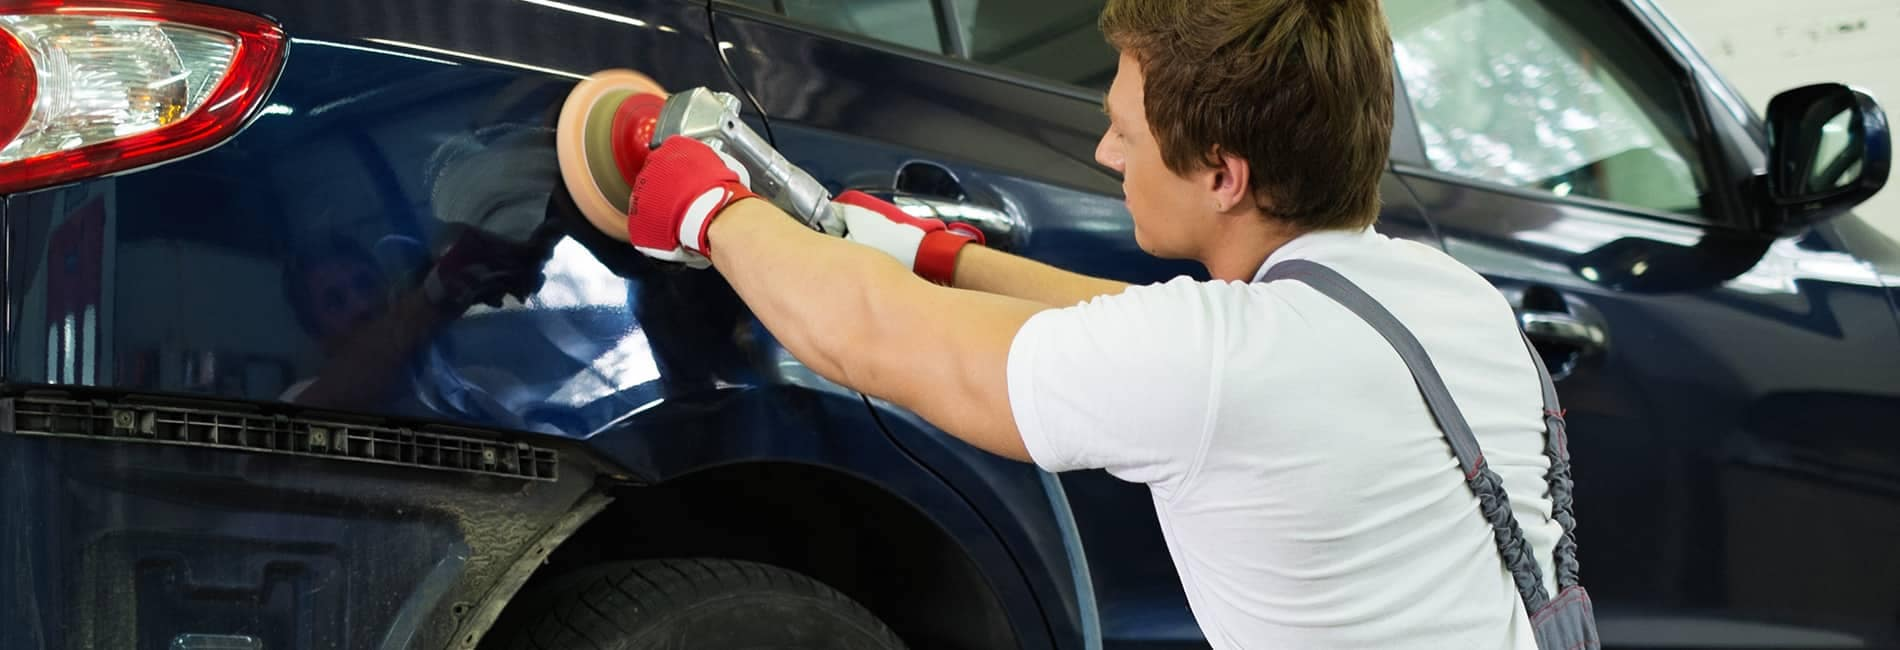 Body Shop Worker Buffing Blue Vehicle